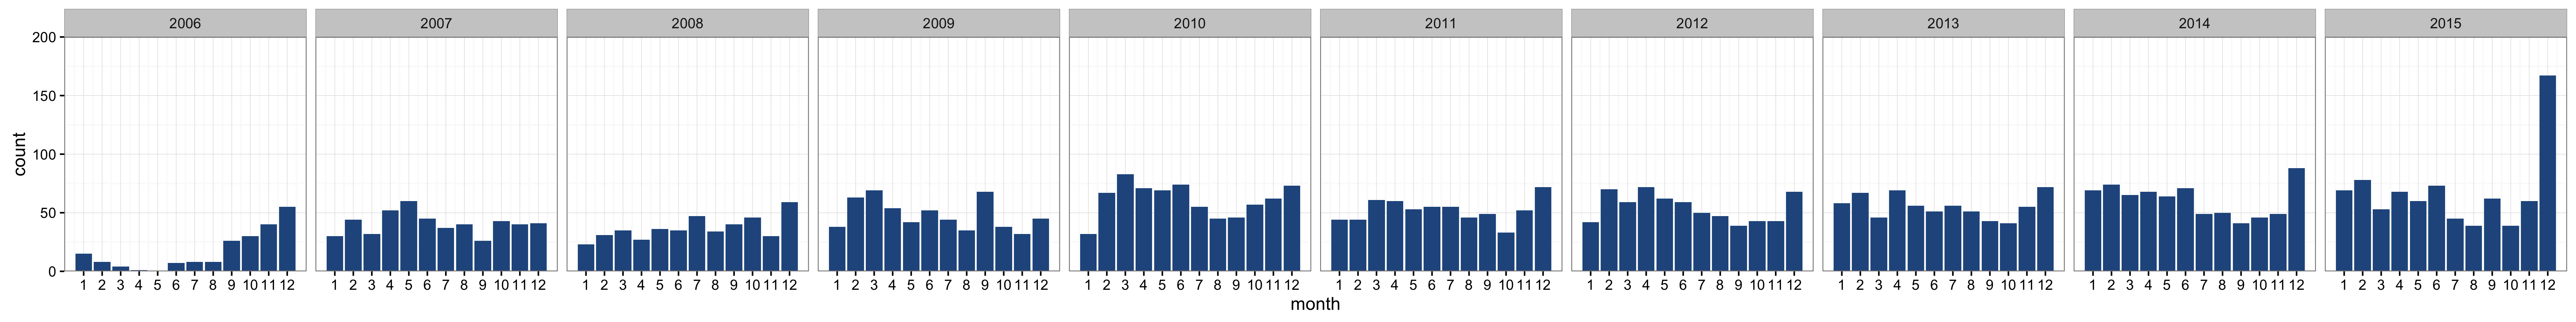 number of bids by month and year